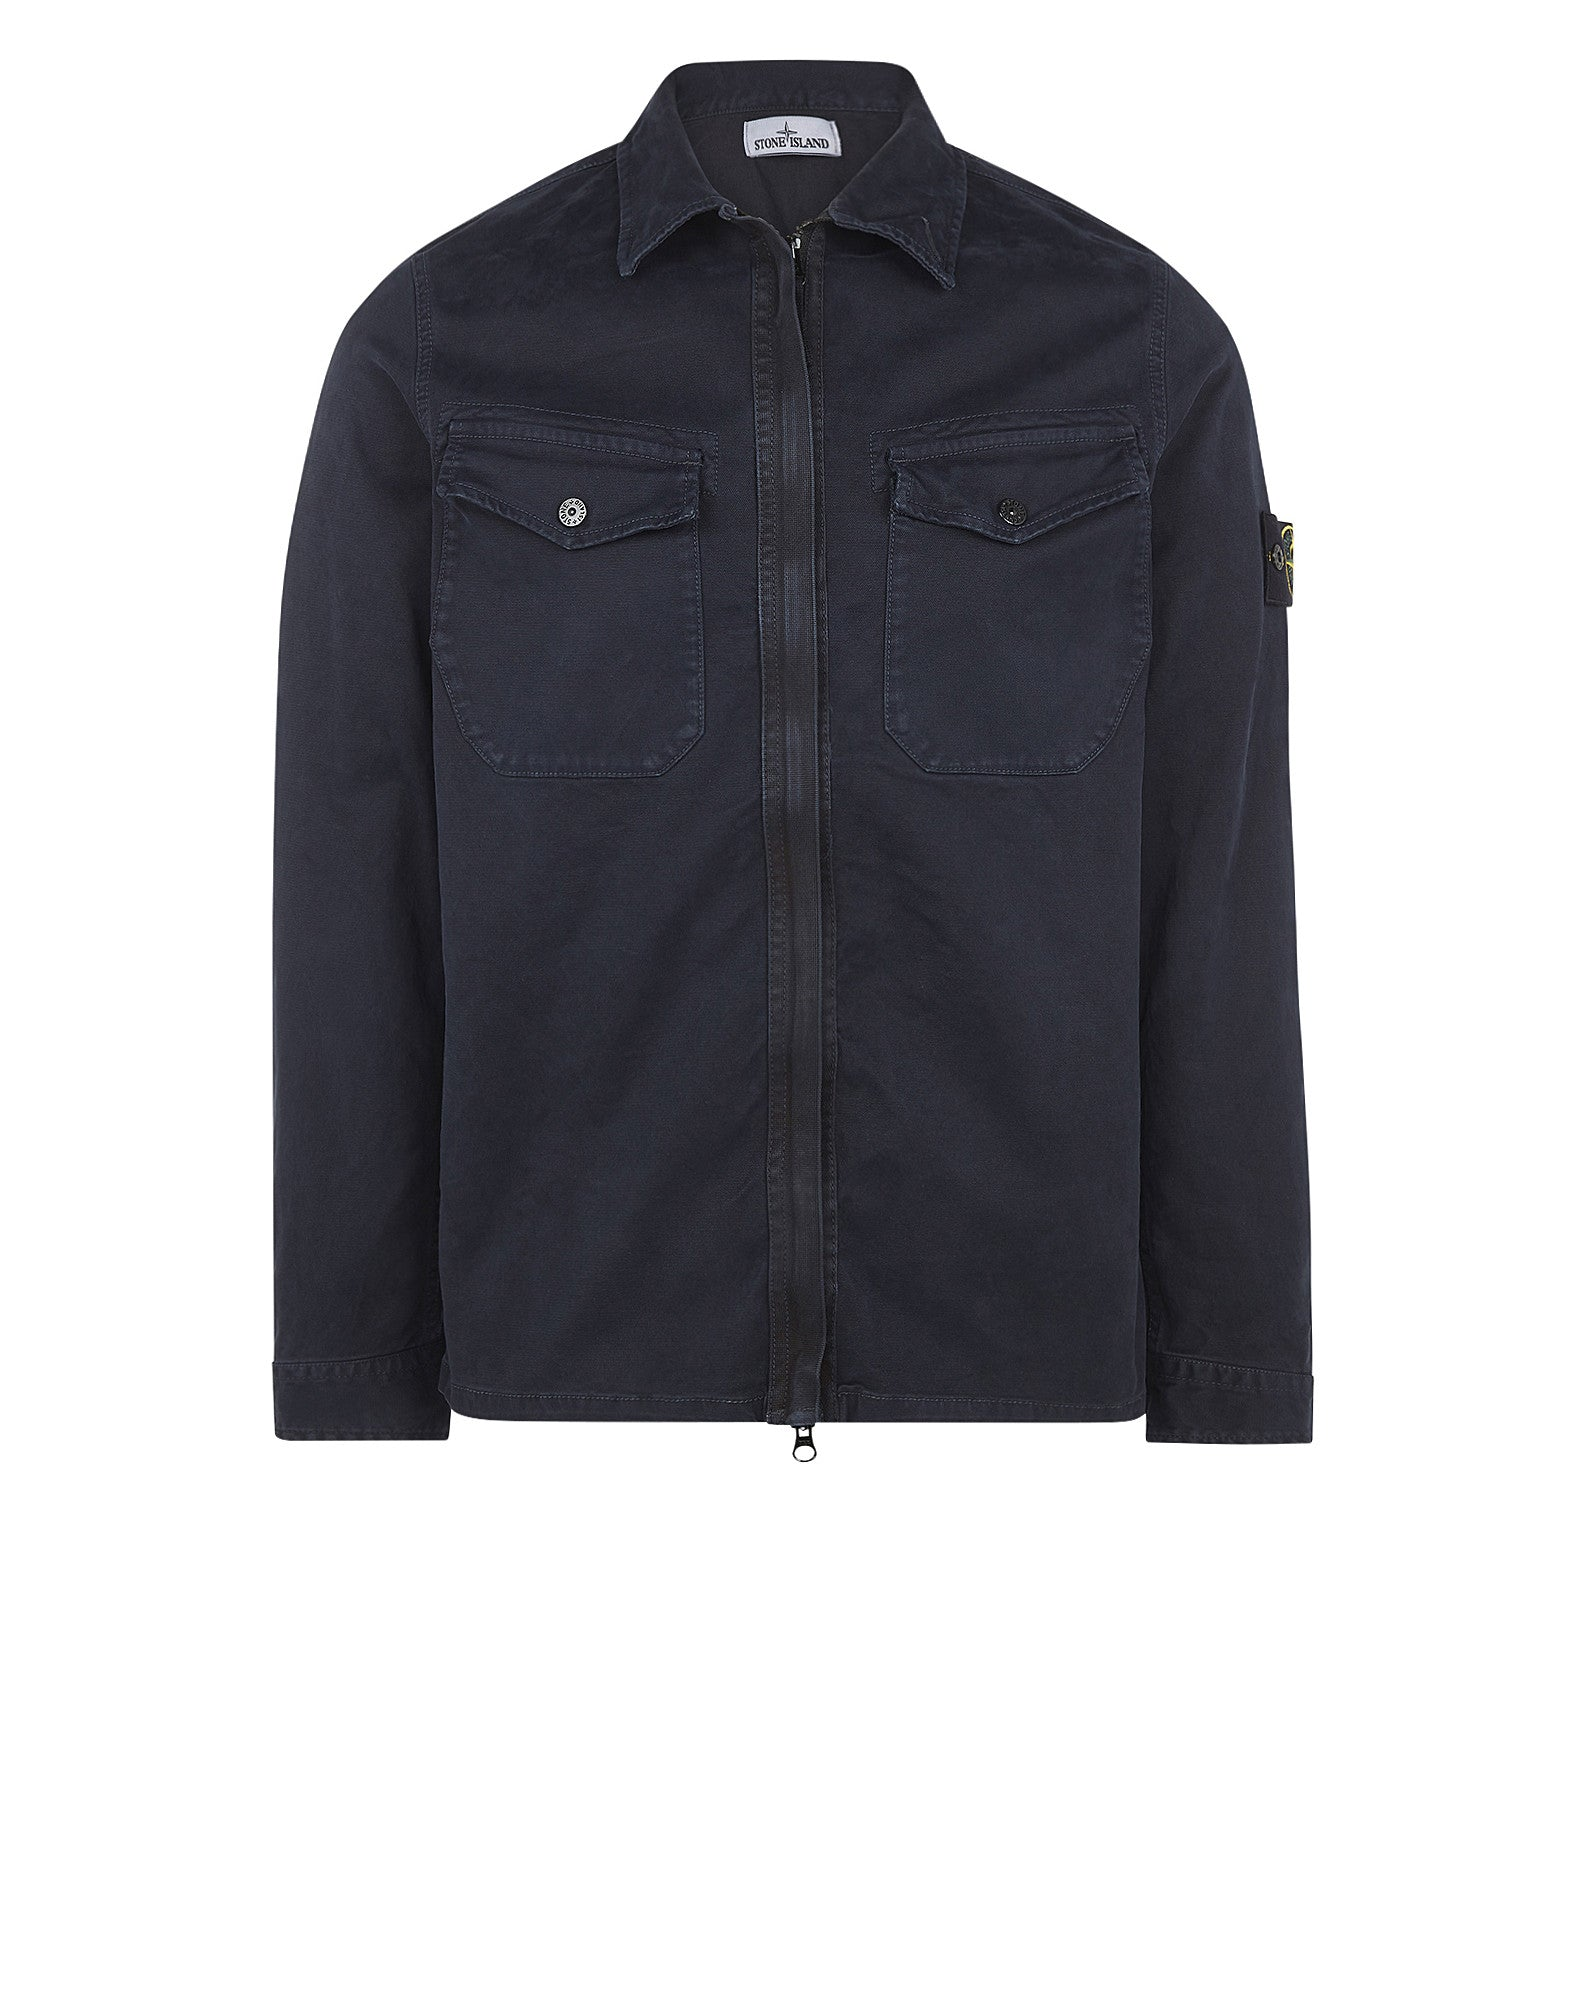 115LN OLD Effect Overshirt in Navy Blue